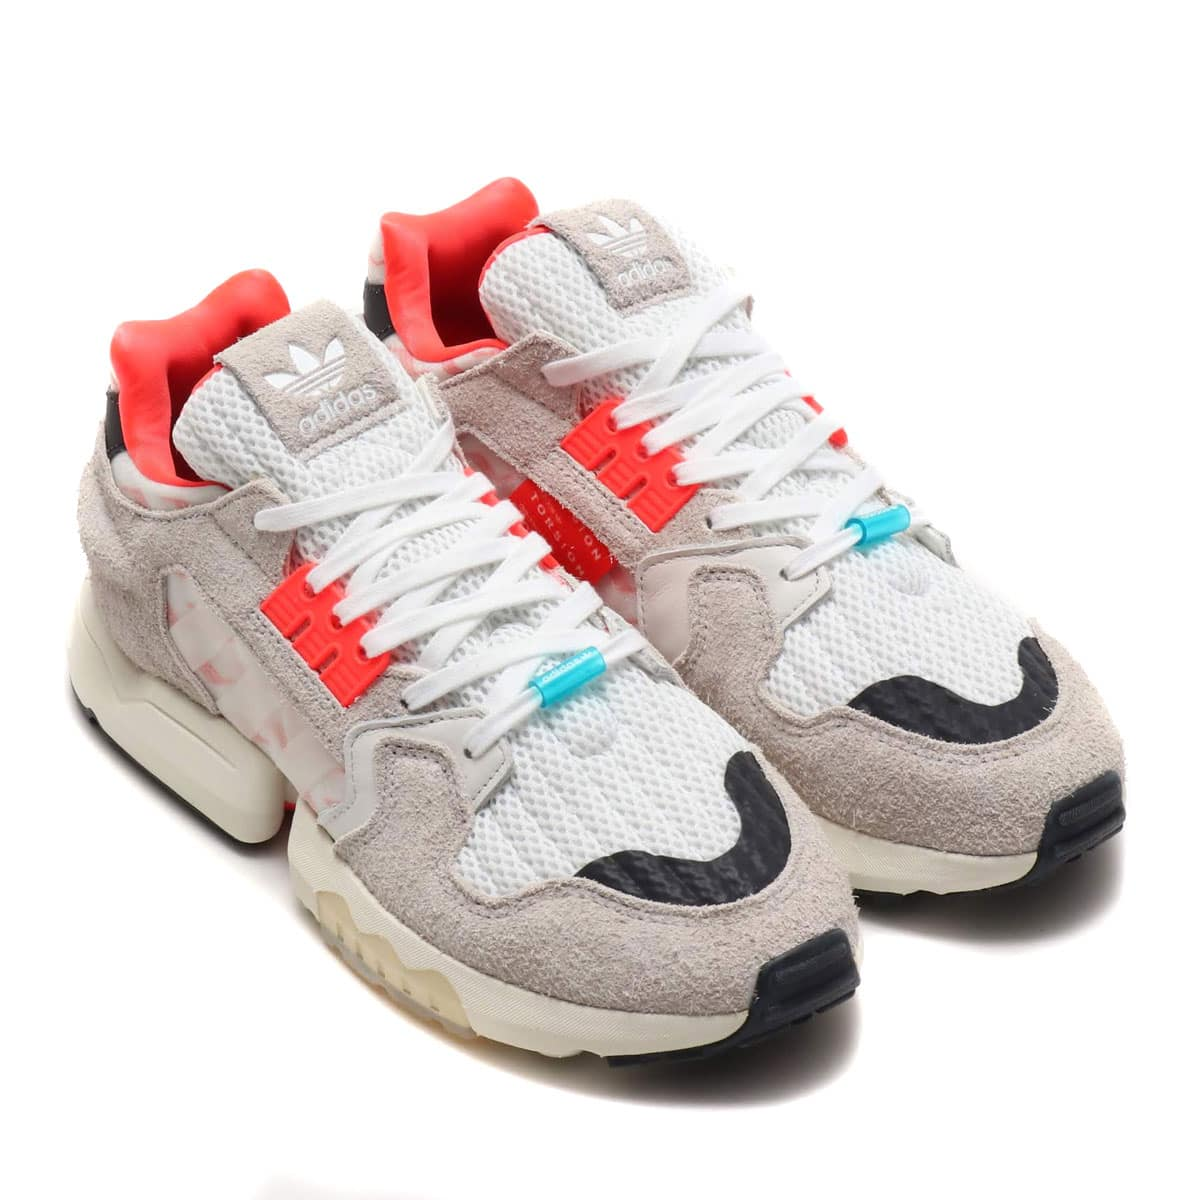 adidas Originals ZX TORSION RUNNING WHITE/CRYSTAL WHITE/SOLAR RED 19FW-S_photo_large